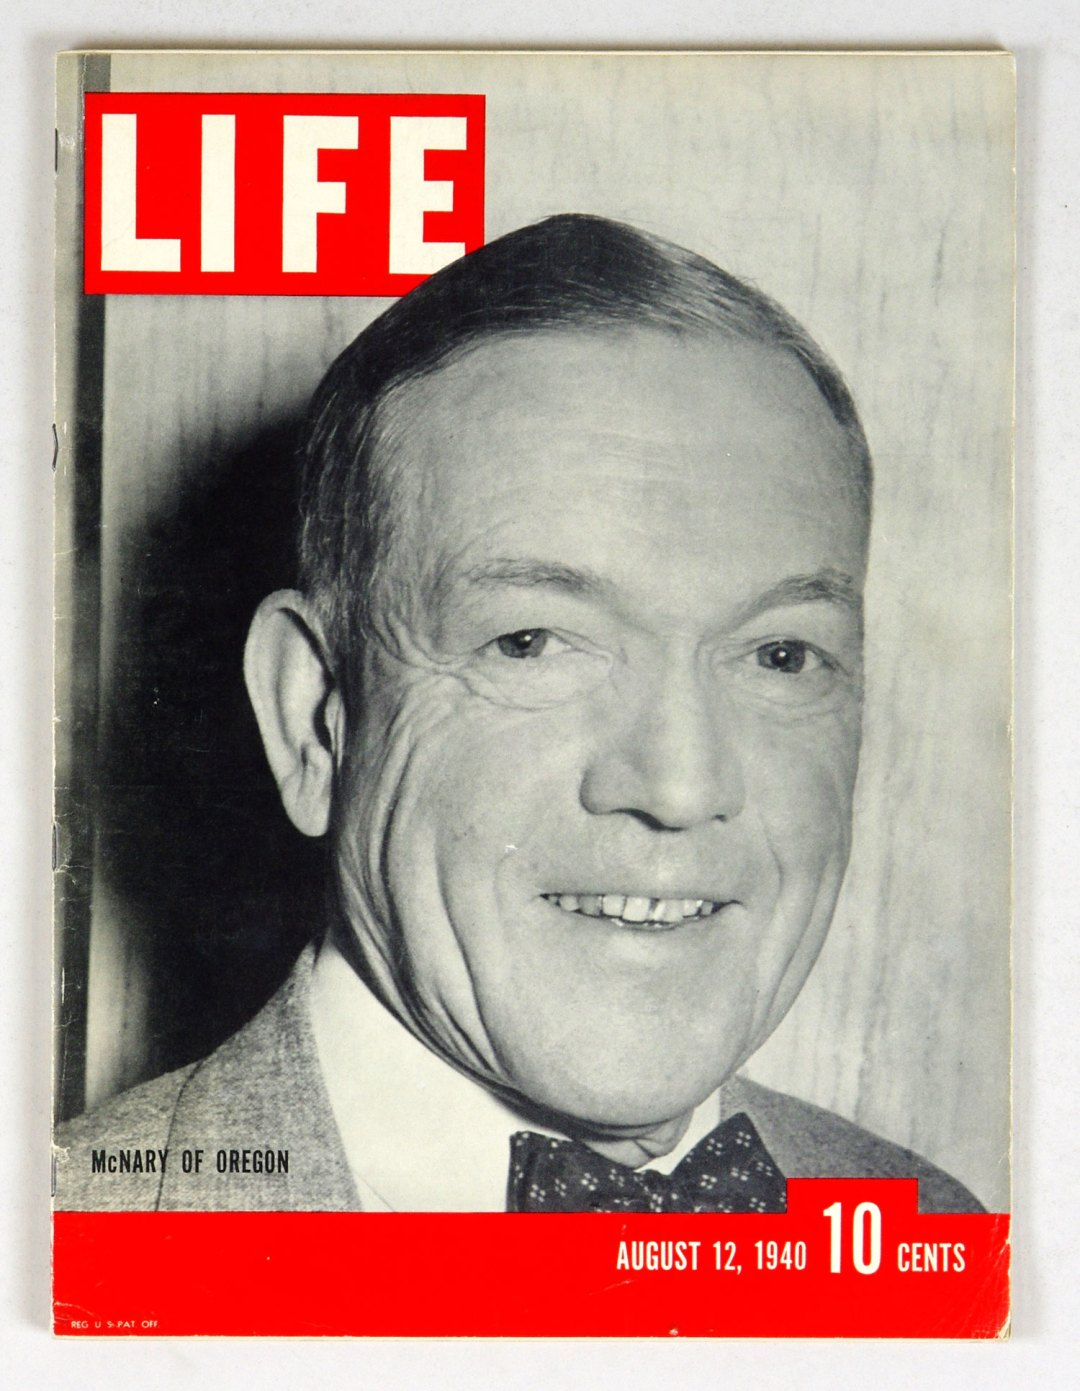 LIFE Magazine 1940 August 12 Vice President Nominee McNary